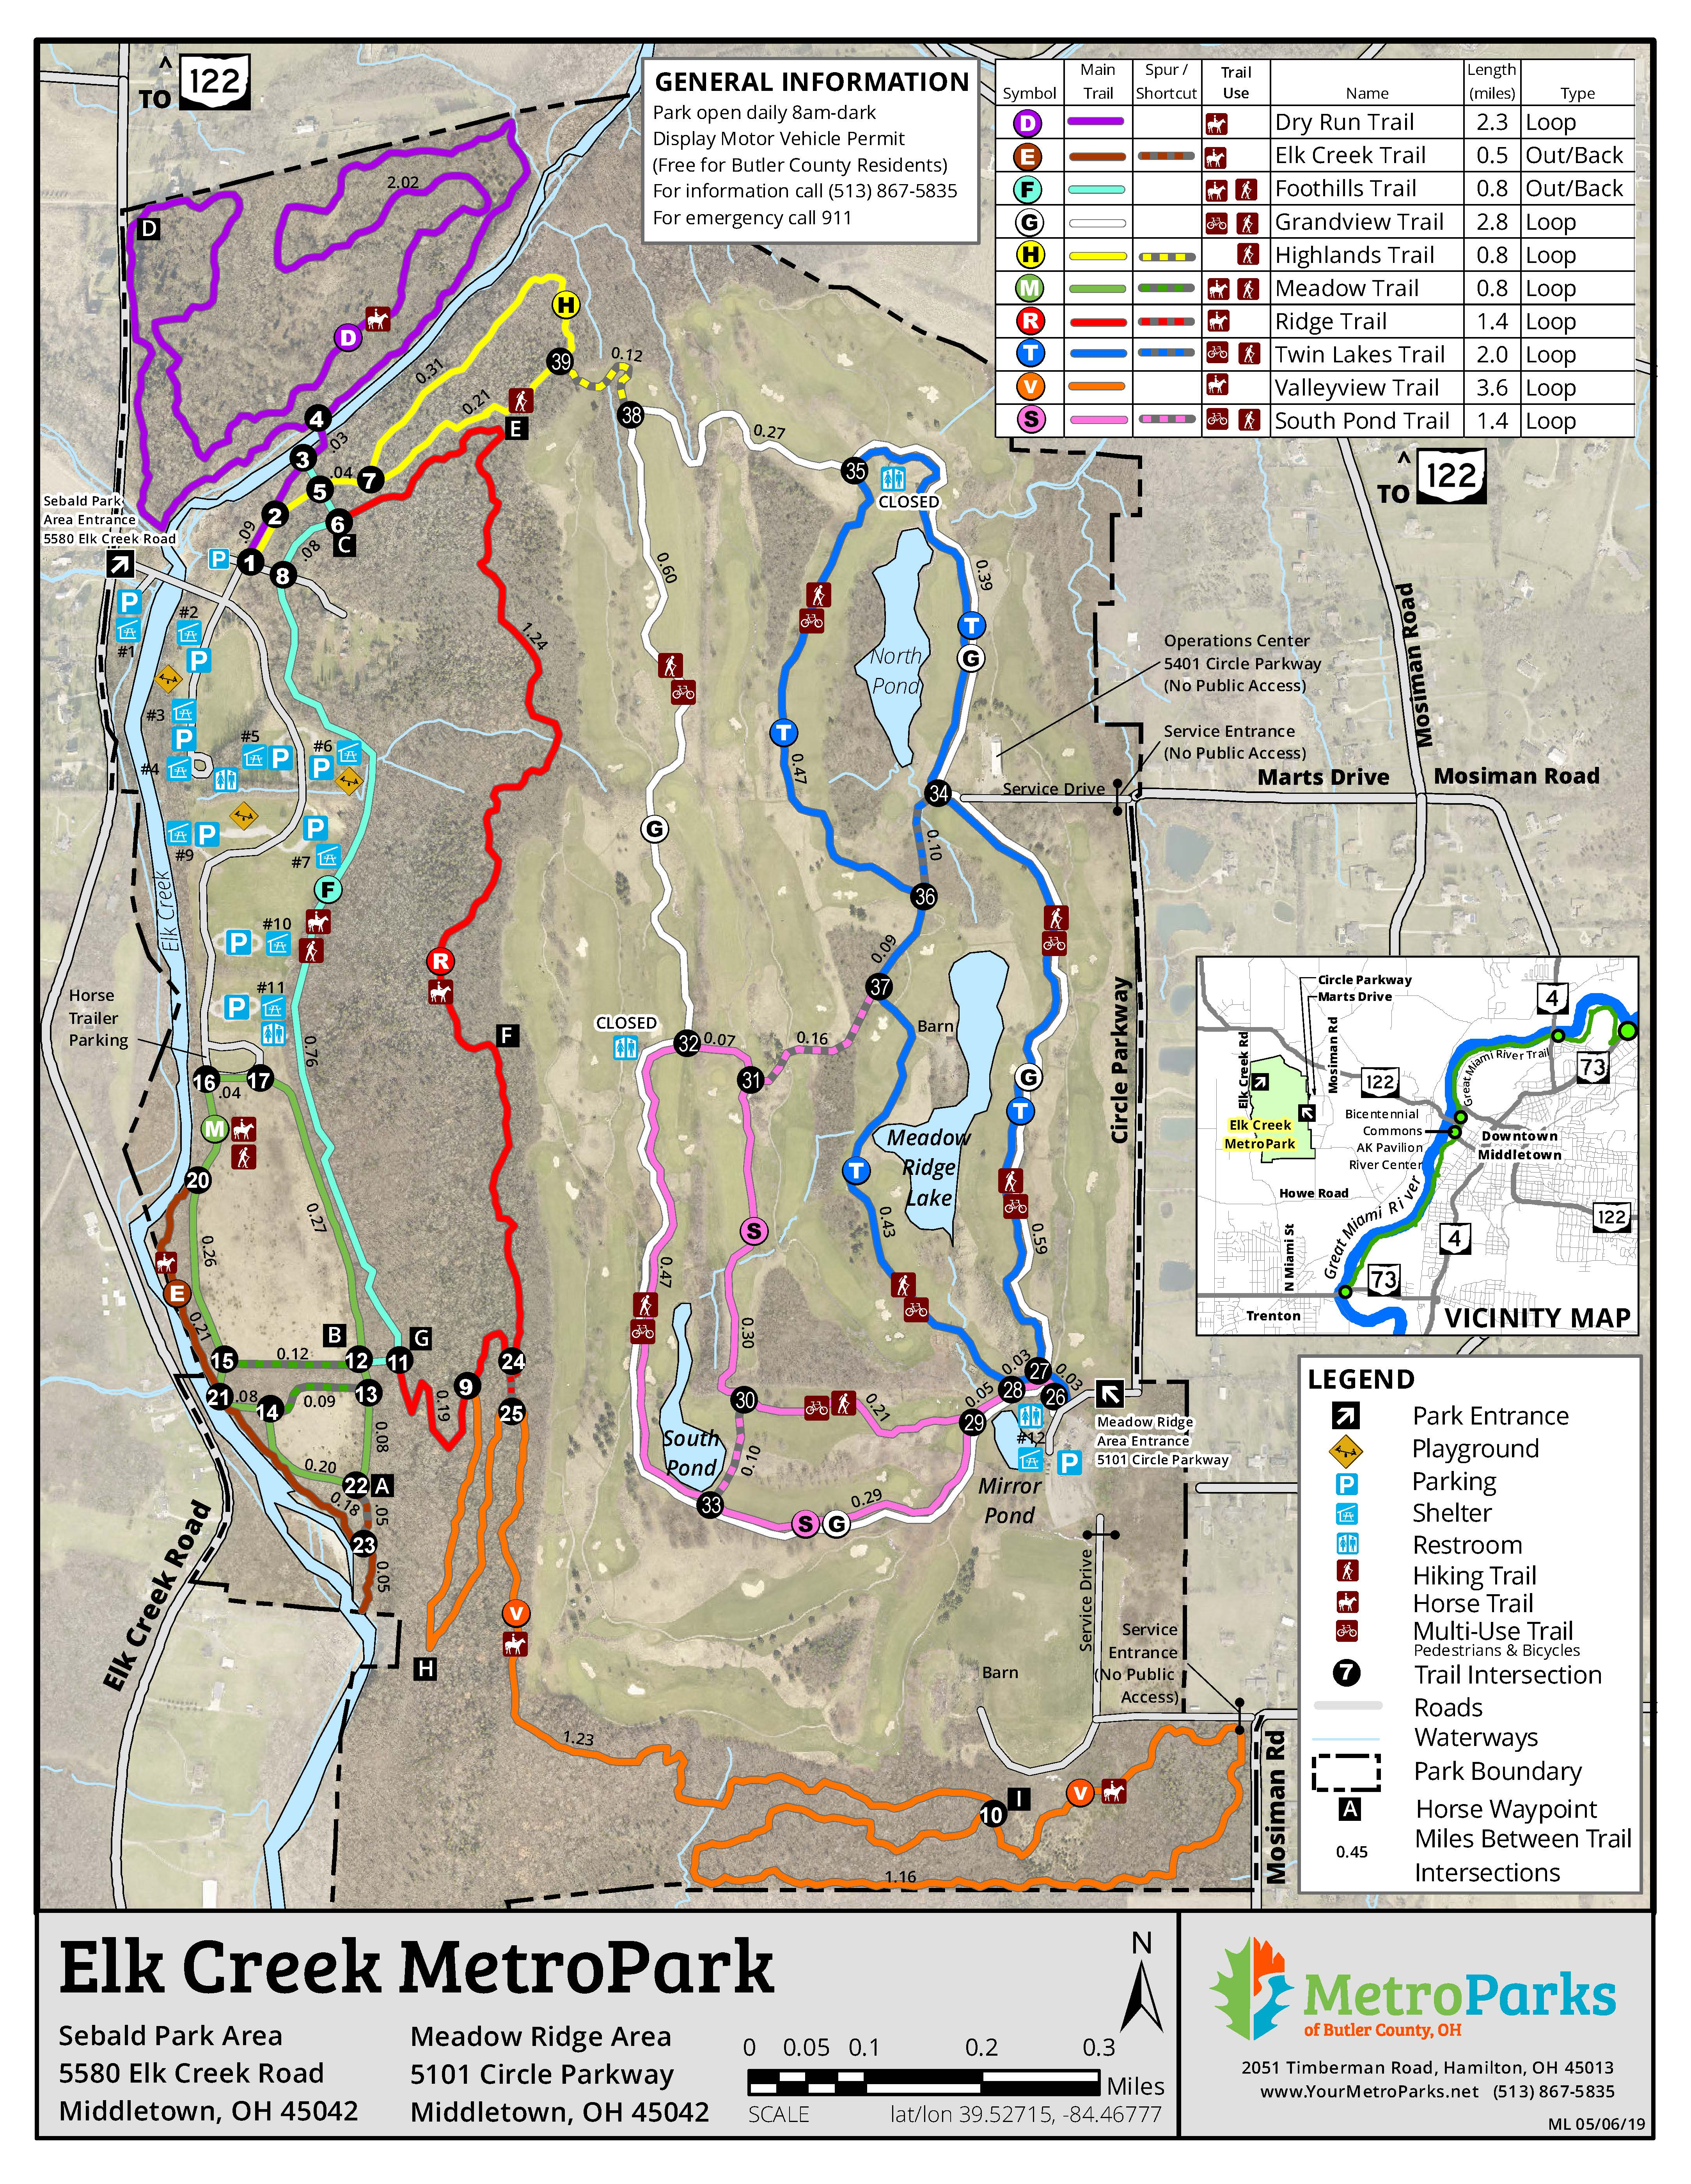 Elk Creek Meadow Ridge Map 2018